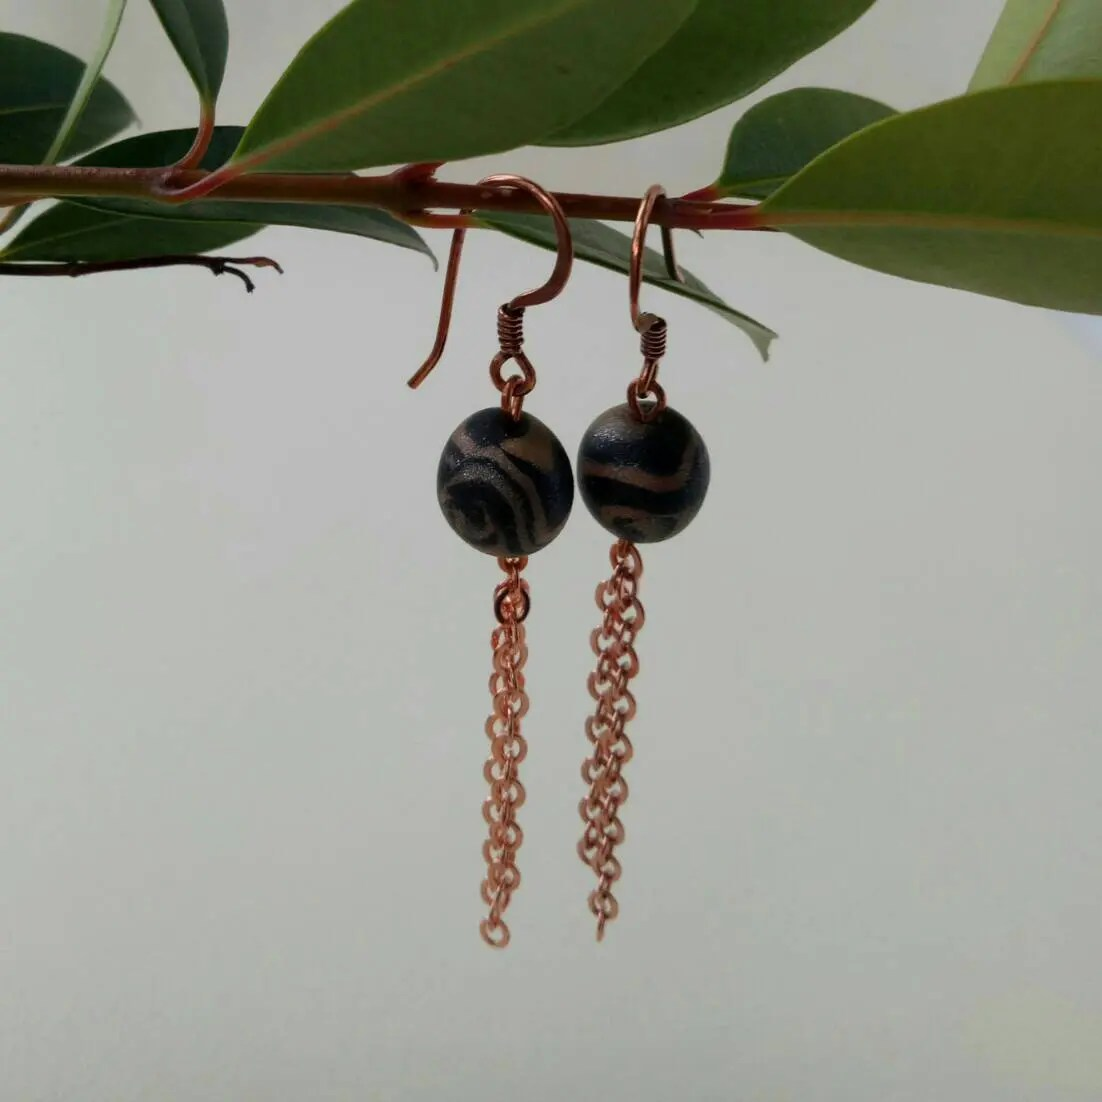 Dangle earrings, black and copper marble ball with copper plated chain, elegant drop earrings 1pc 99.99% Pure Copper Metal Safe Using Sheet Plate 0.8mm100mm100mm 1pc 99.99% Pure Copper Metal Safe Using Sheet Plate 0.8mm100mm100mm il 570xN